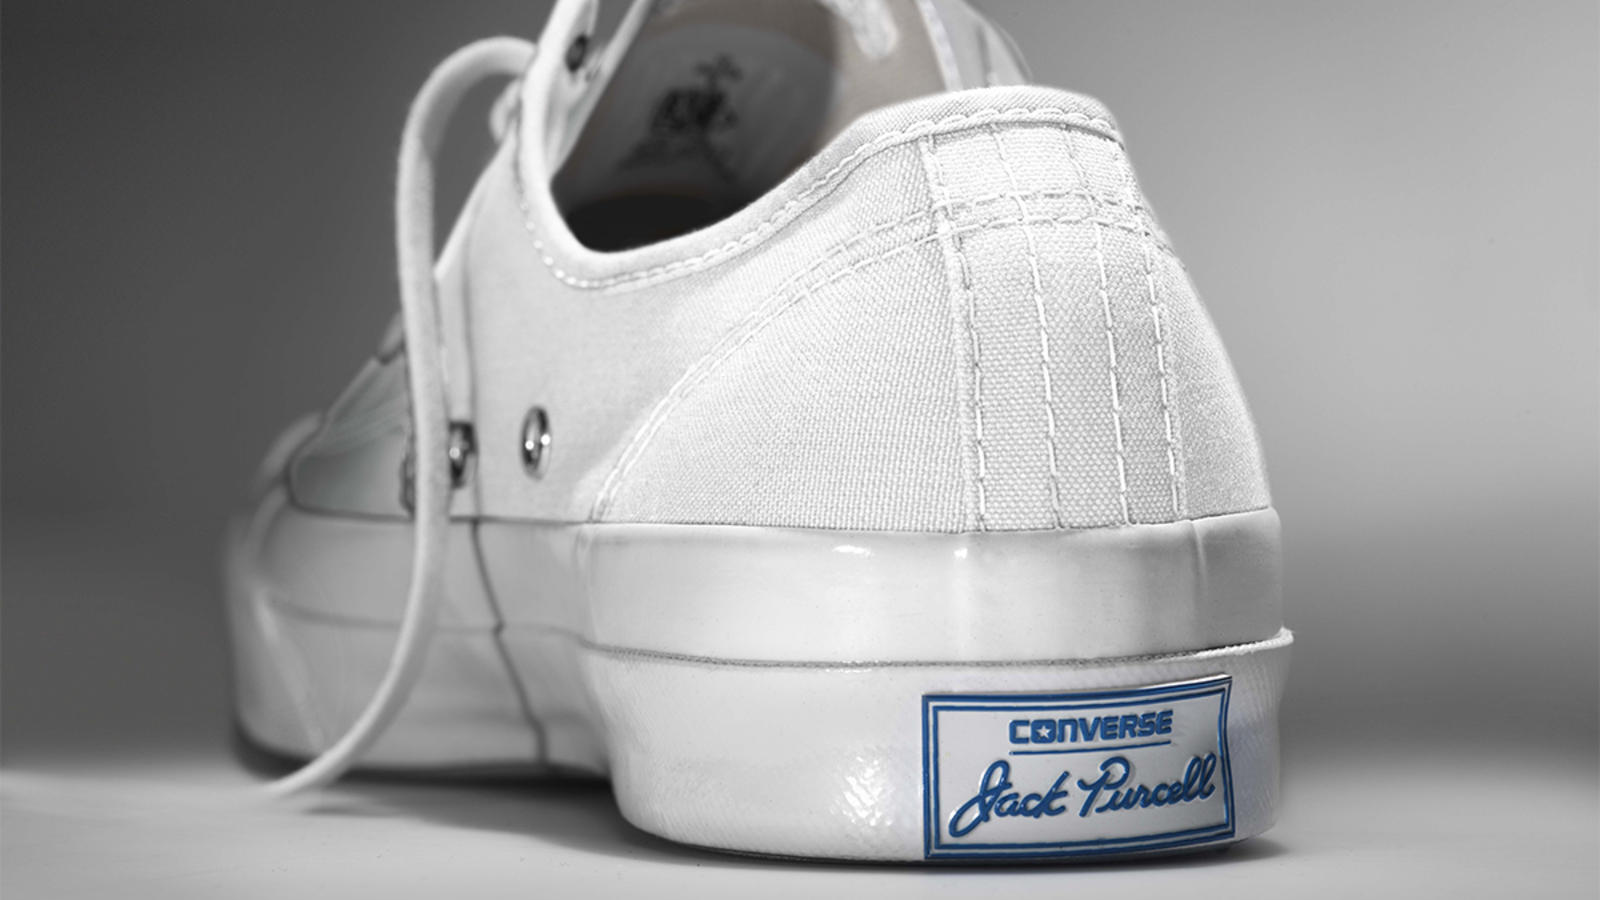 855bf4234740 CONVERSE DEBUTS THE JACK PURCELL SIGNATURE SNEAKER - Nike News